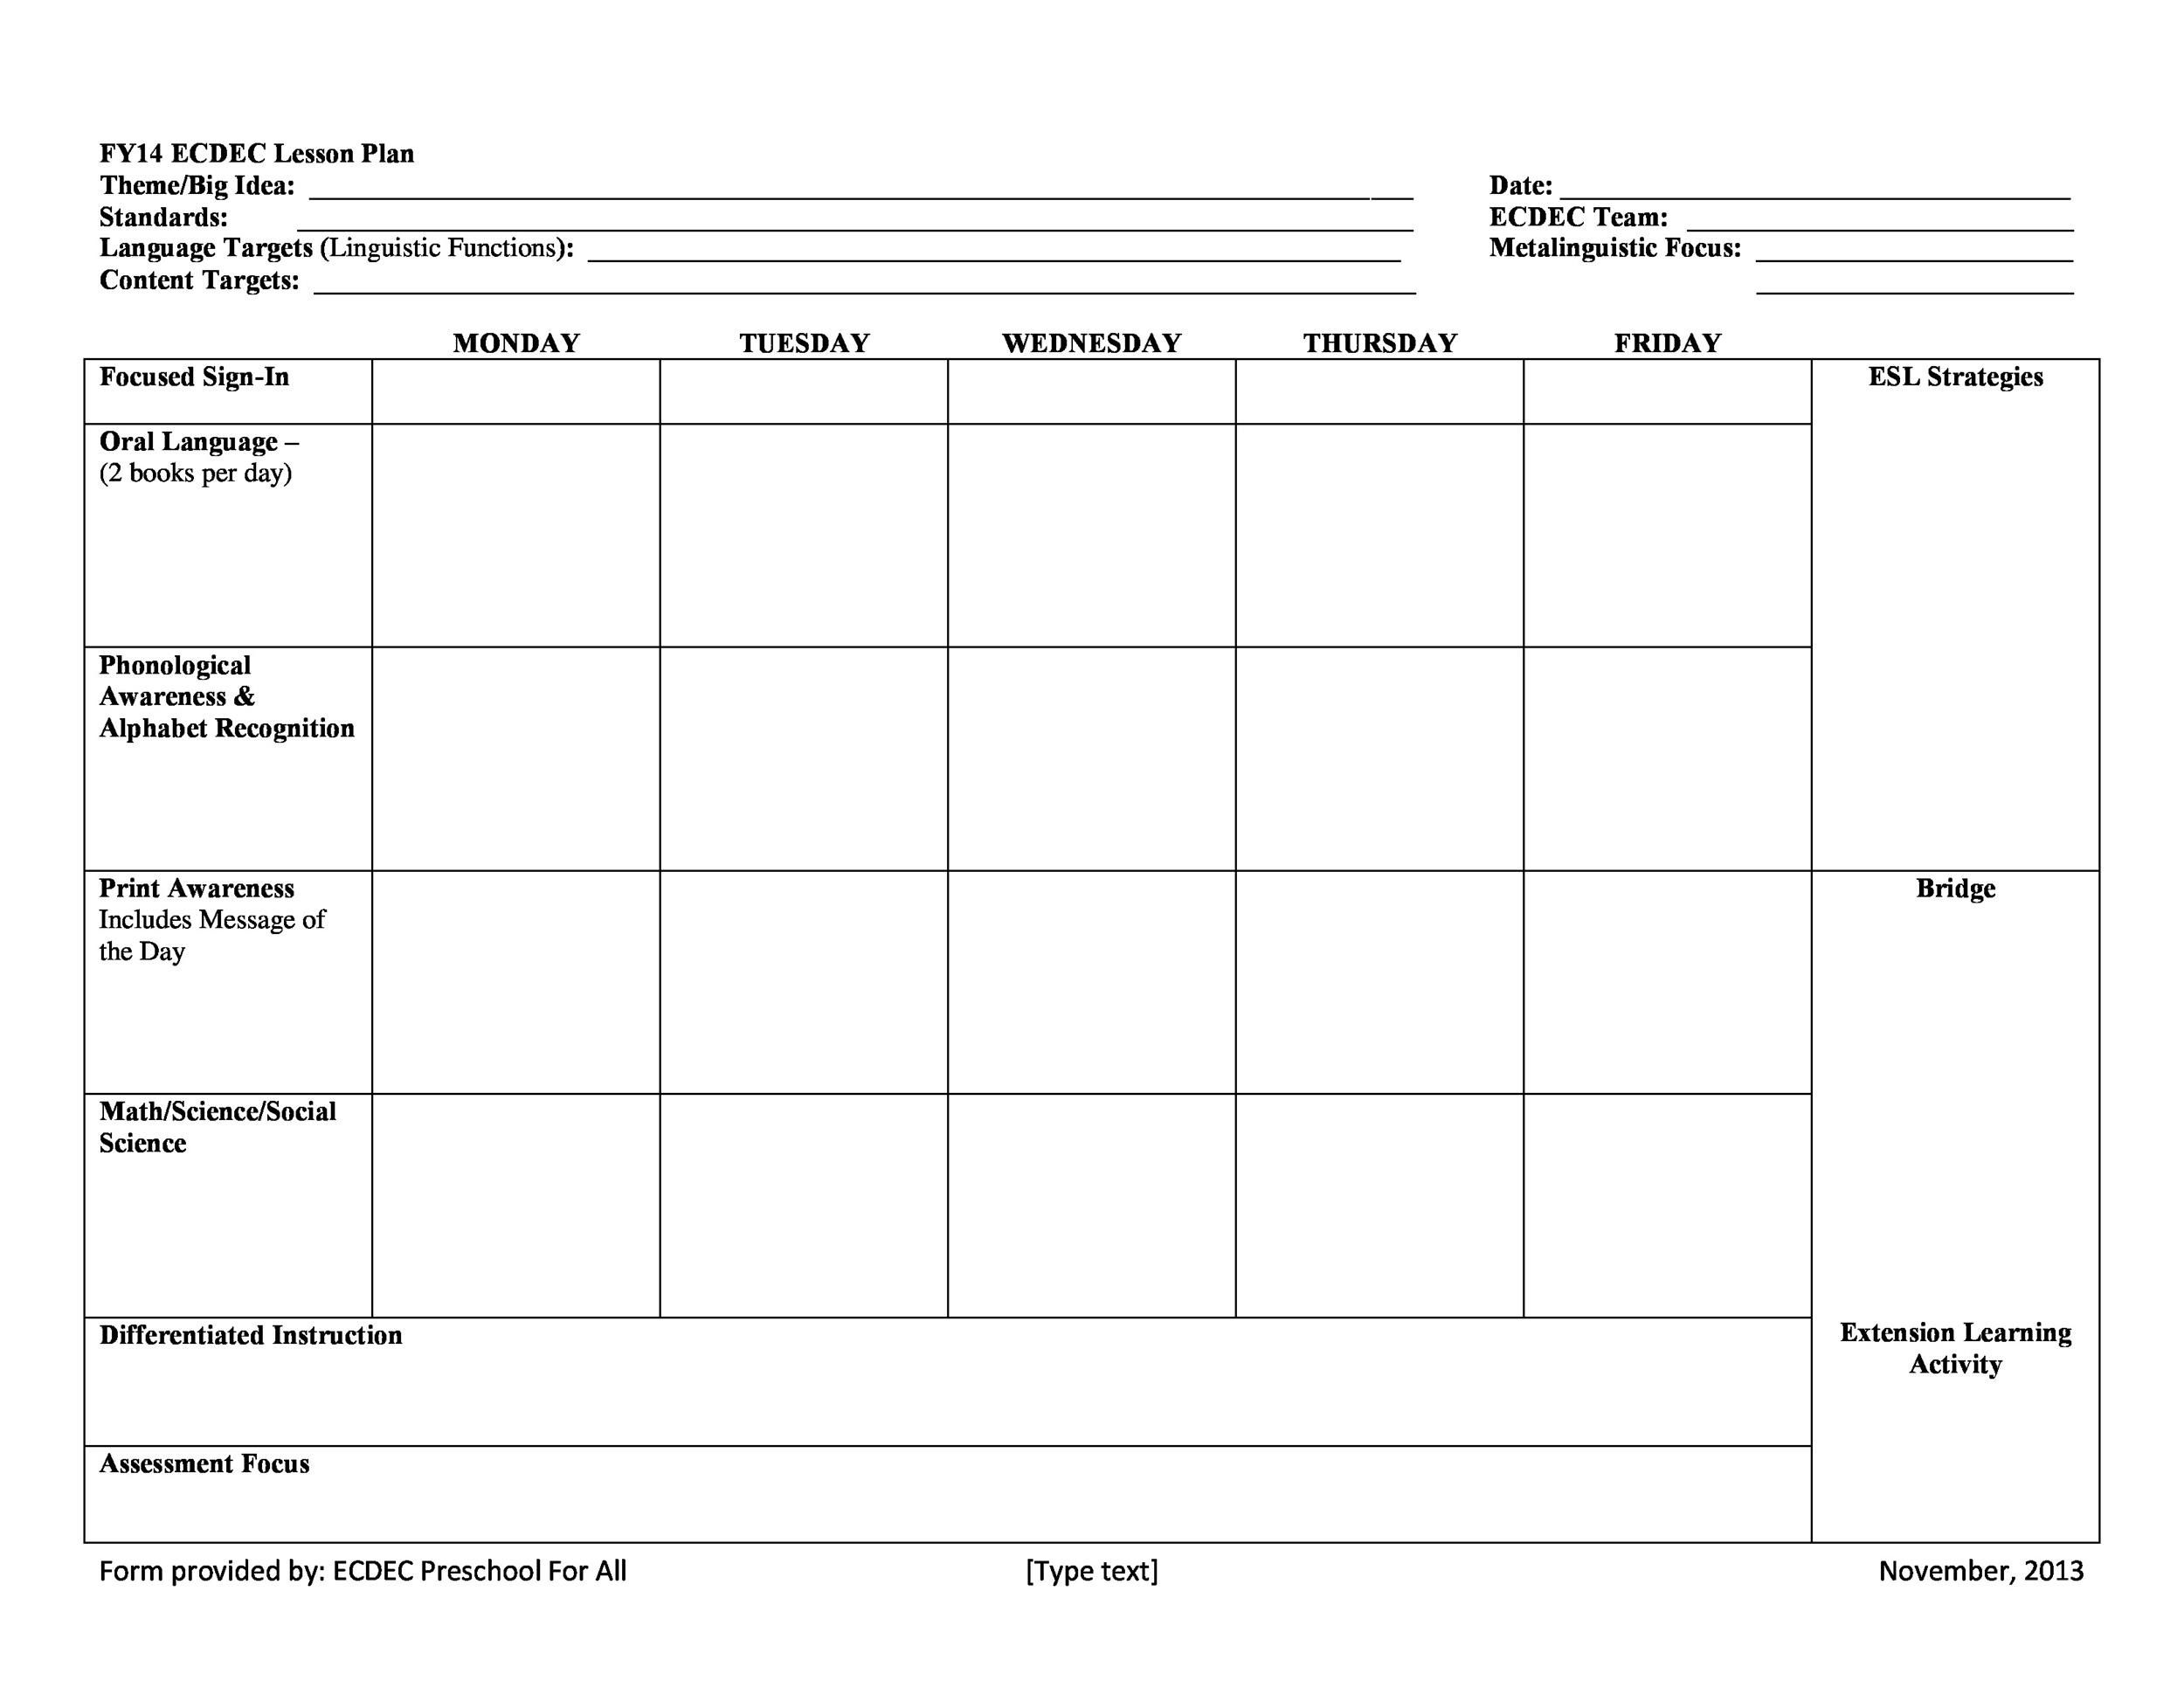 005 Stunning Preschool Lesson Plan Template High Def  Editable With Objective Pre-k PrintableFull